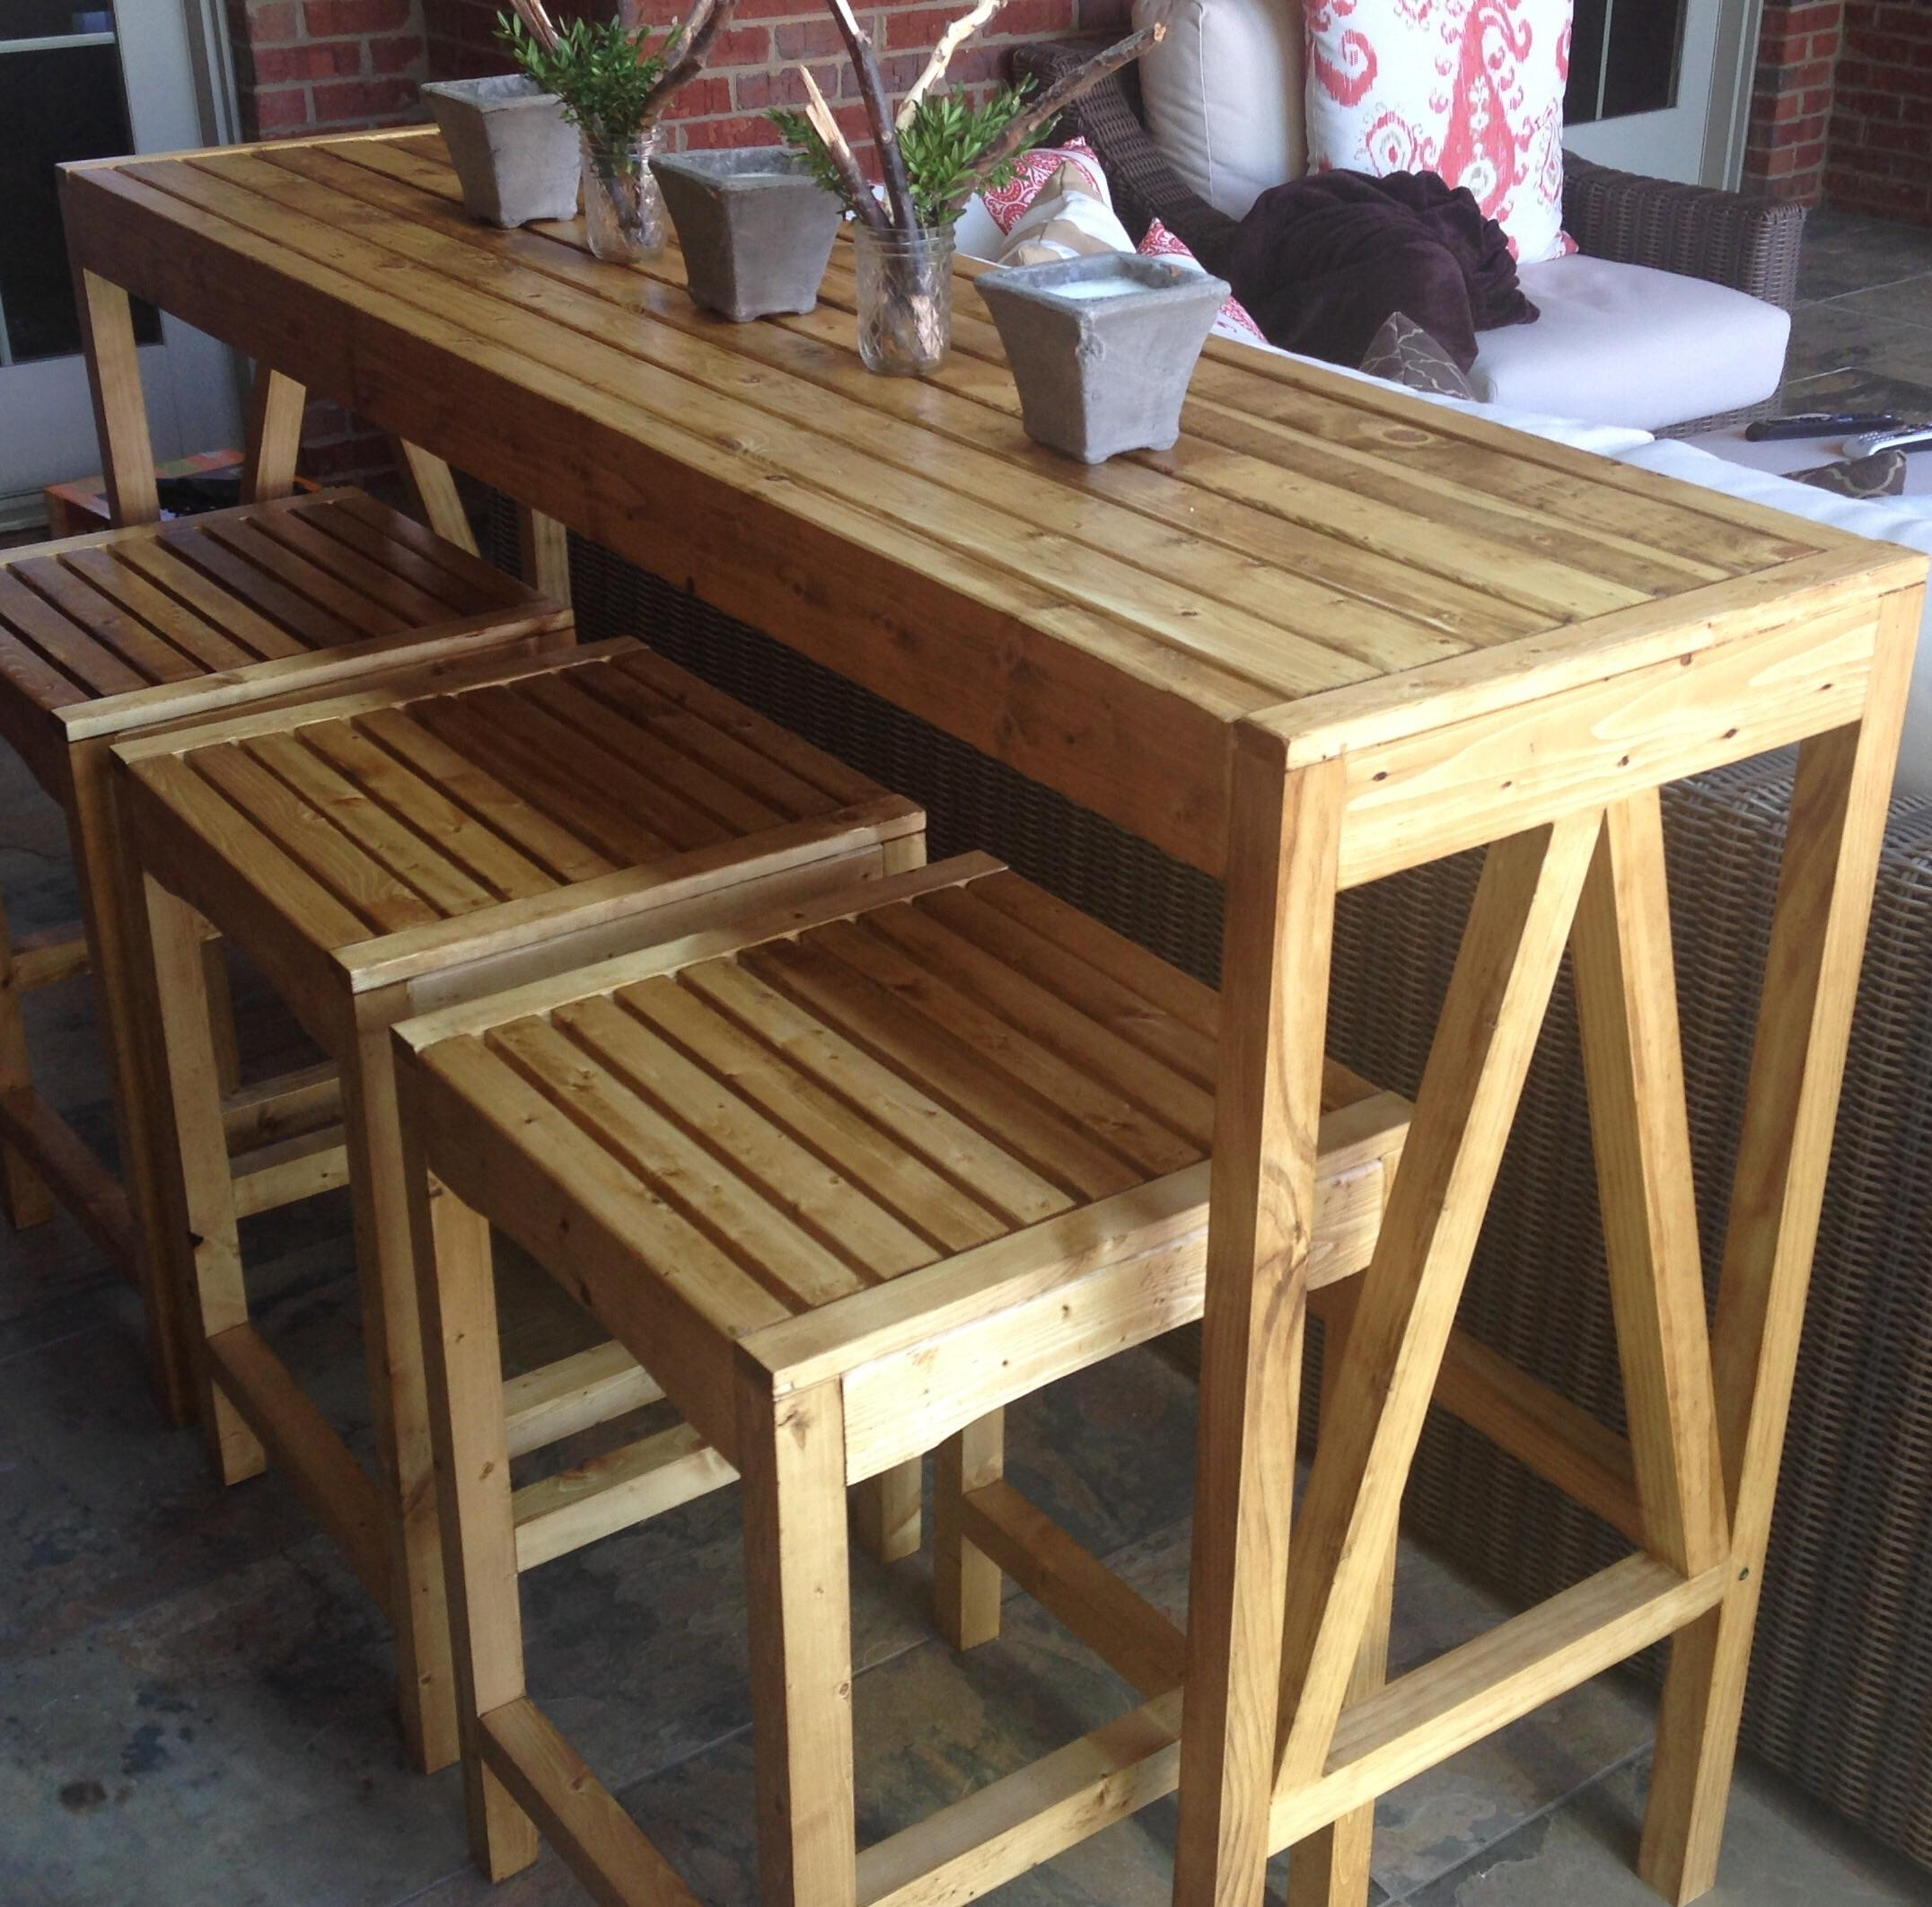 Ana White | Sutton Custom Outdoor Bar Stools – Diy Projects Throughout Ana White Outdoor Sofas (Image 17 of 20)